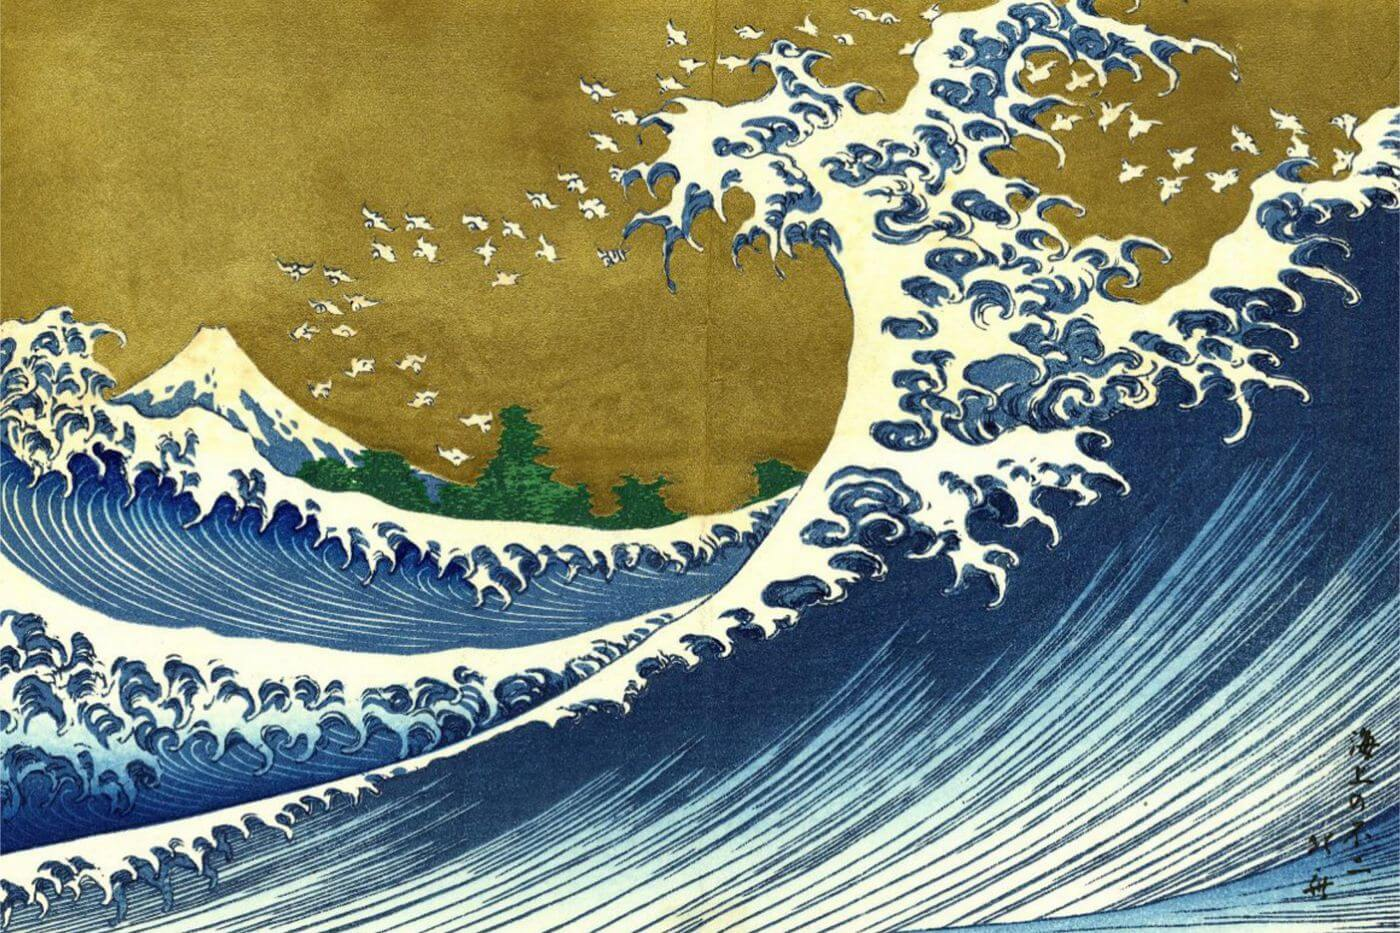 Katsushika Hokusai Paintings | Buy Posters, Frames, Canvas, Digital Art & Large Size Prints Of The Famous Old Master's Artworks